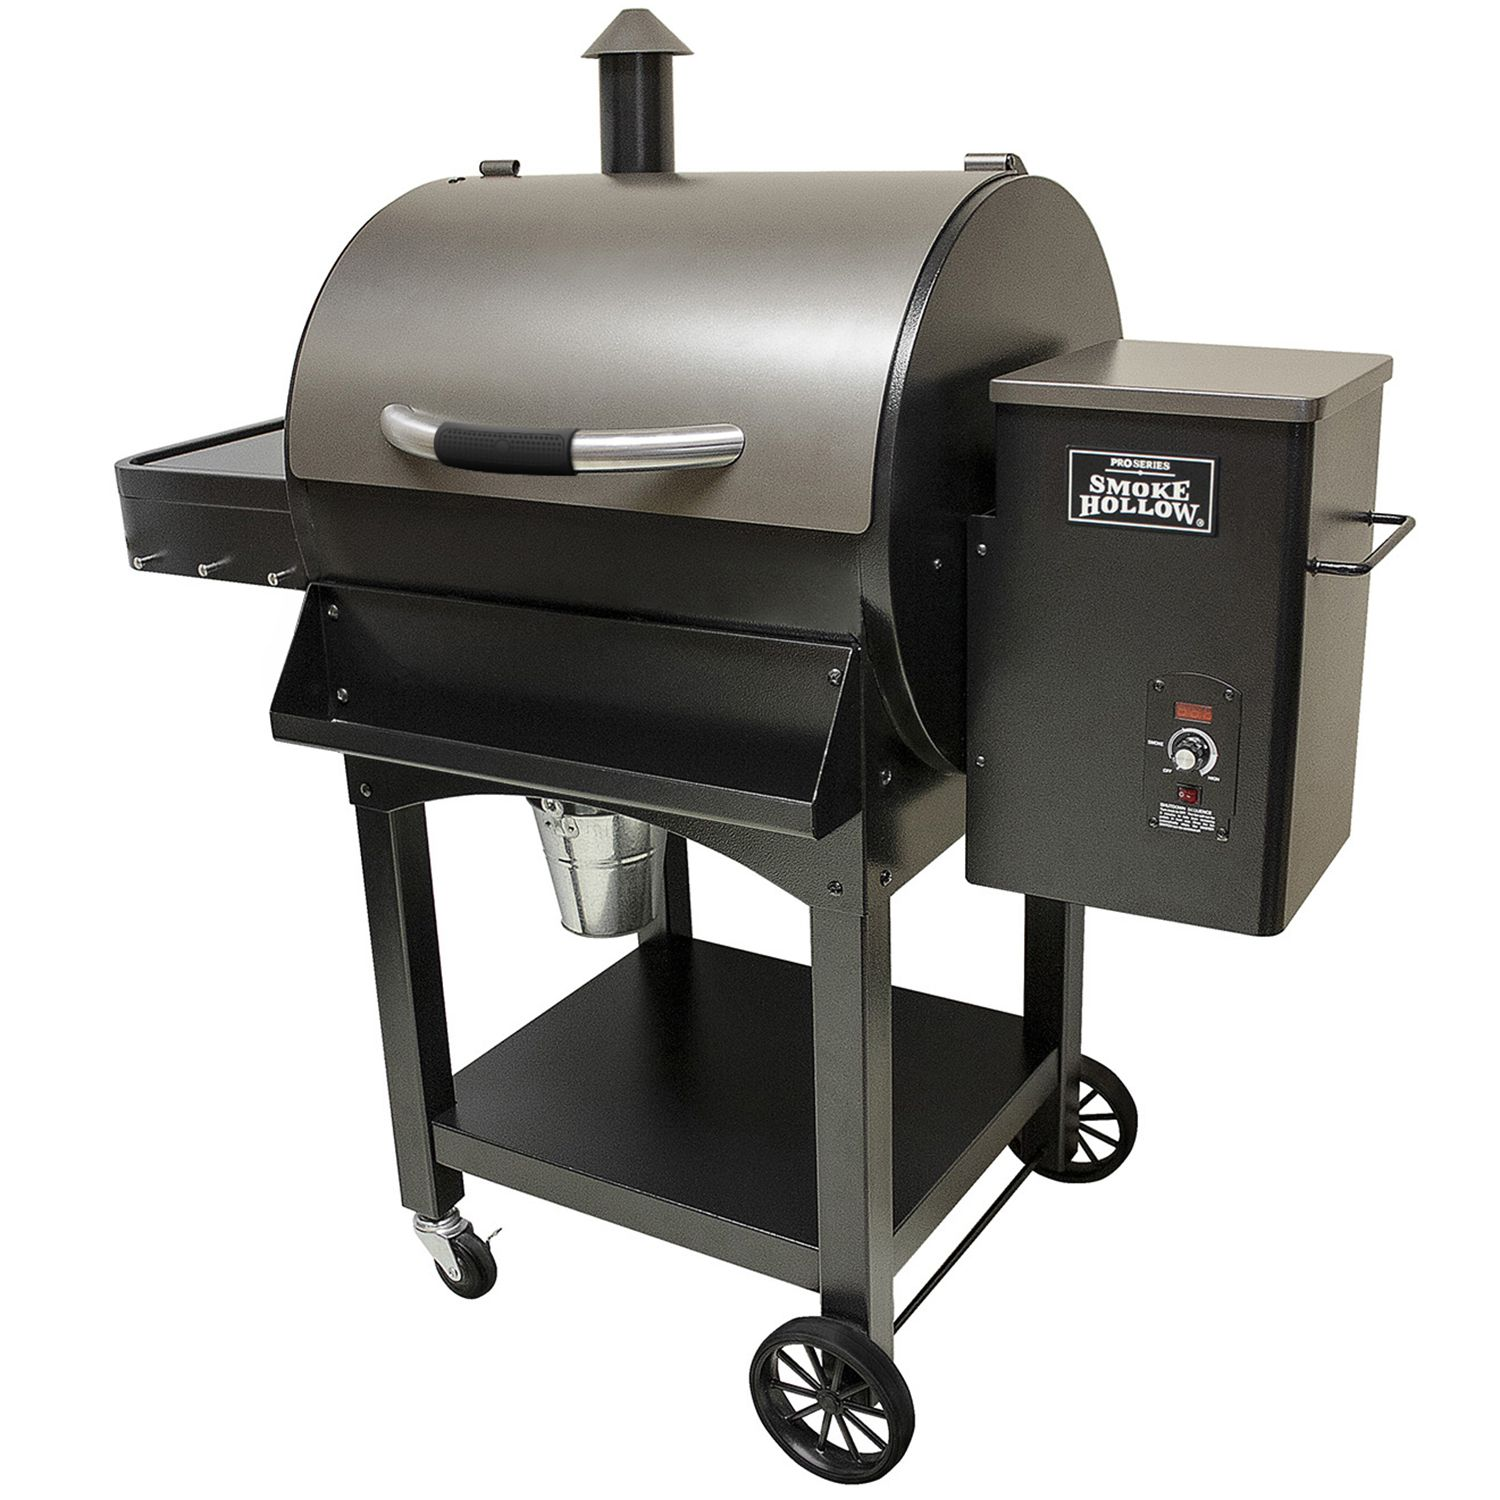 Smoke hollow 24 in pellet grill 2415pg lumber jack bbq pellets - Pellet grills and smokers ...